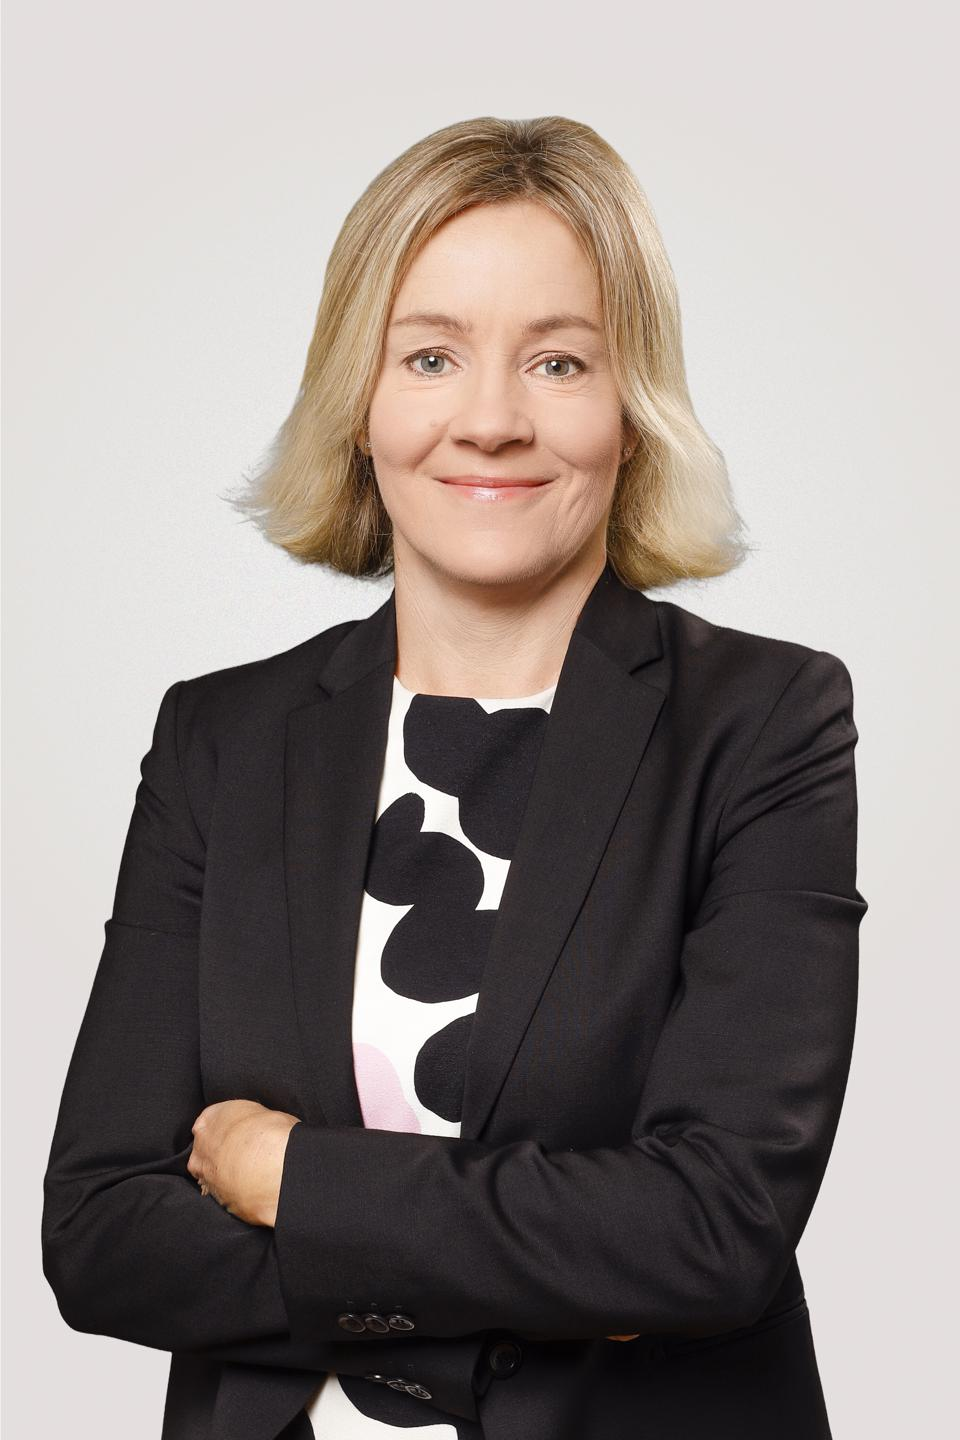 Pia Jormalainen, Co-Founder and CEO of New Nordic School